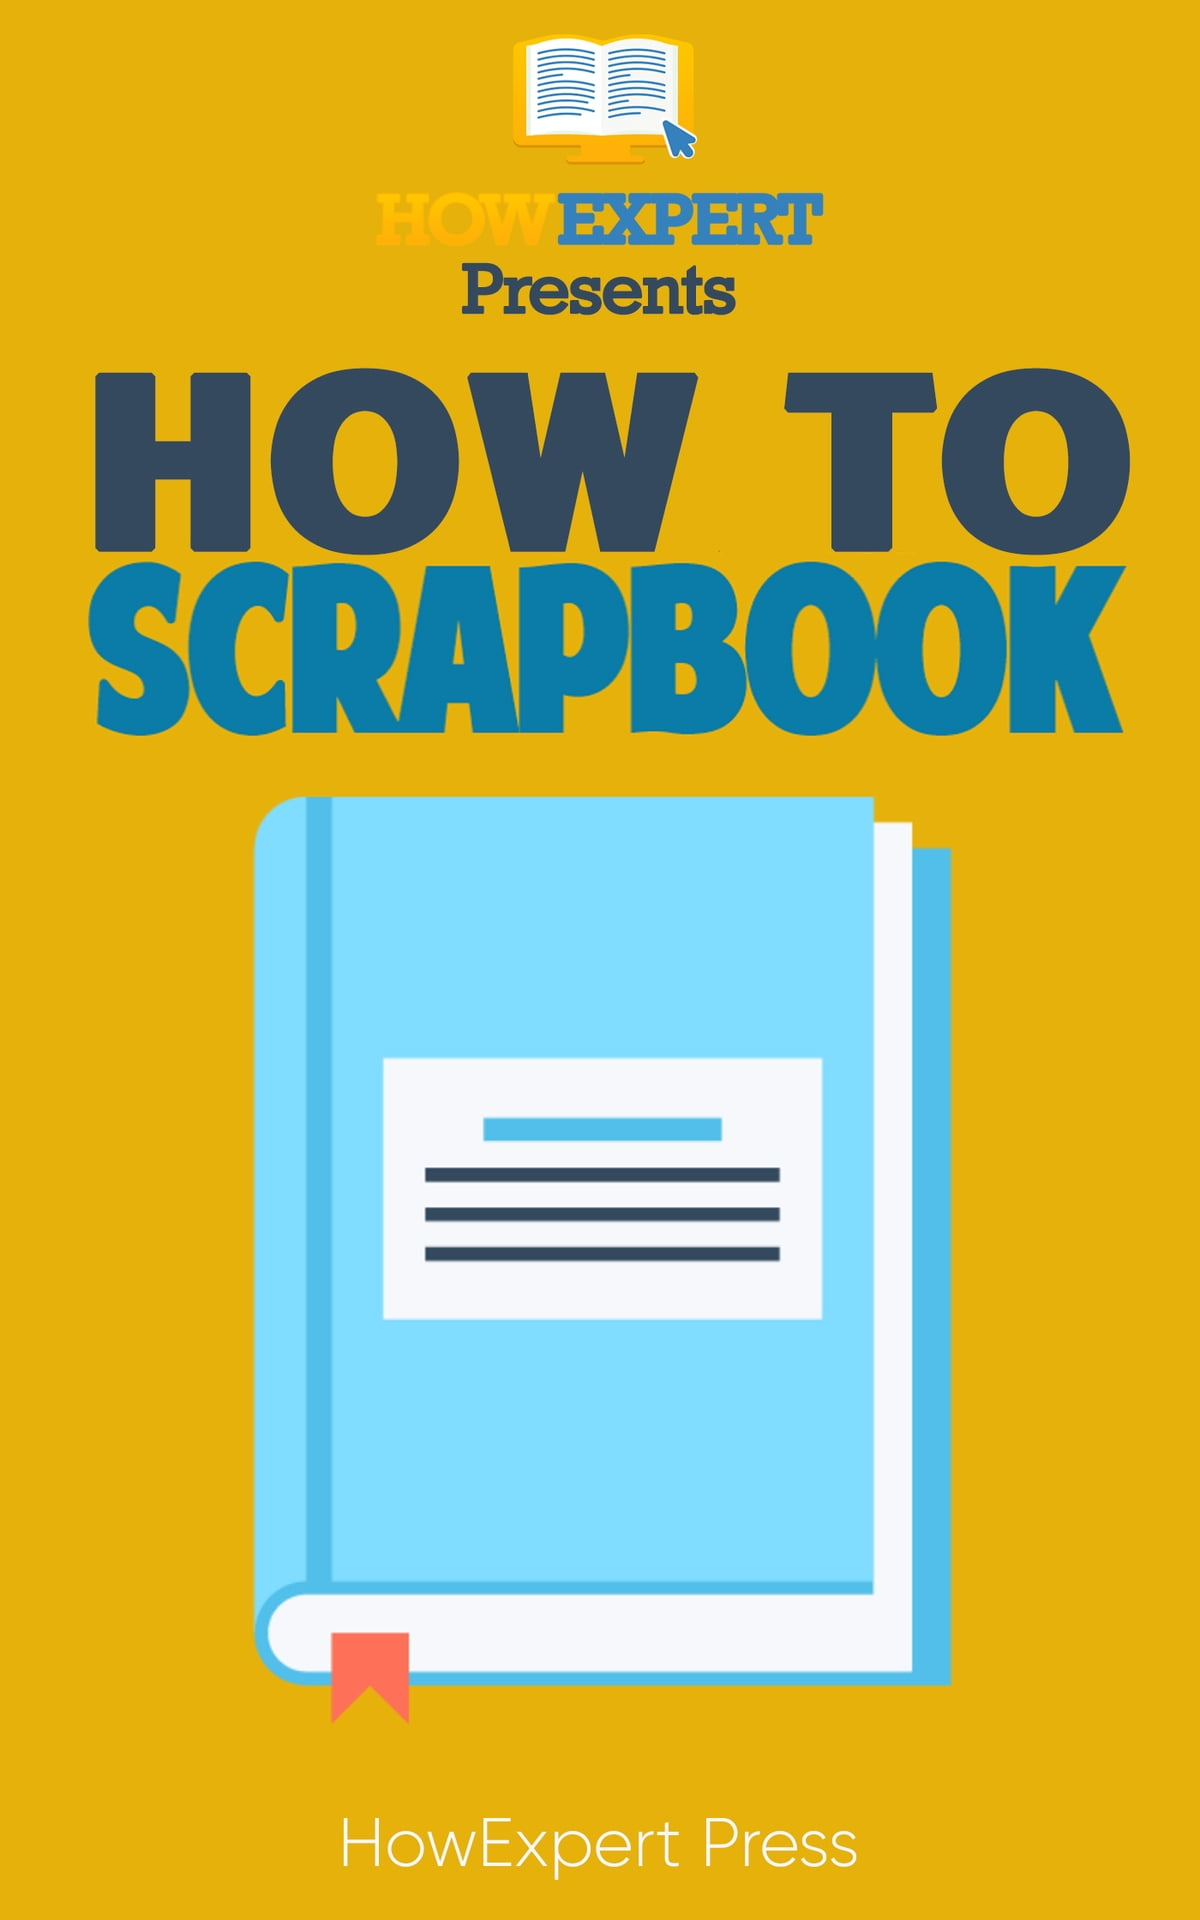 Autor Santiago Porns Cormat how to make a scrapbook: your-step-by-step guide to making a scrapbook ebookhowexpert - rakuten kobo